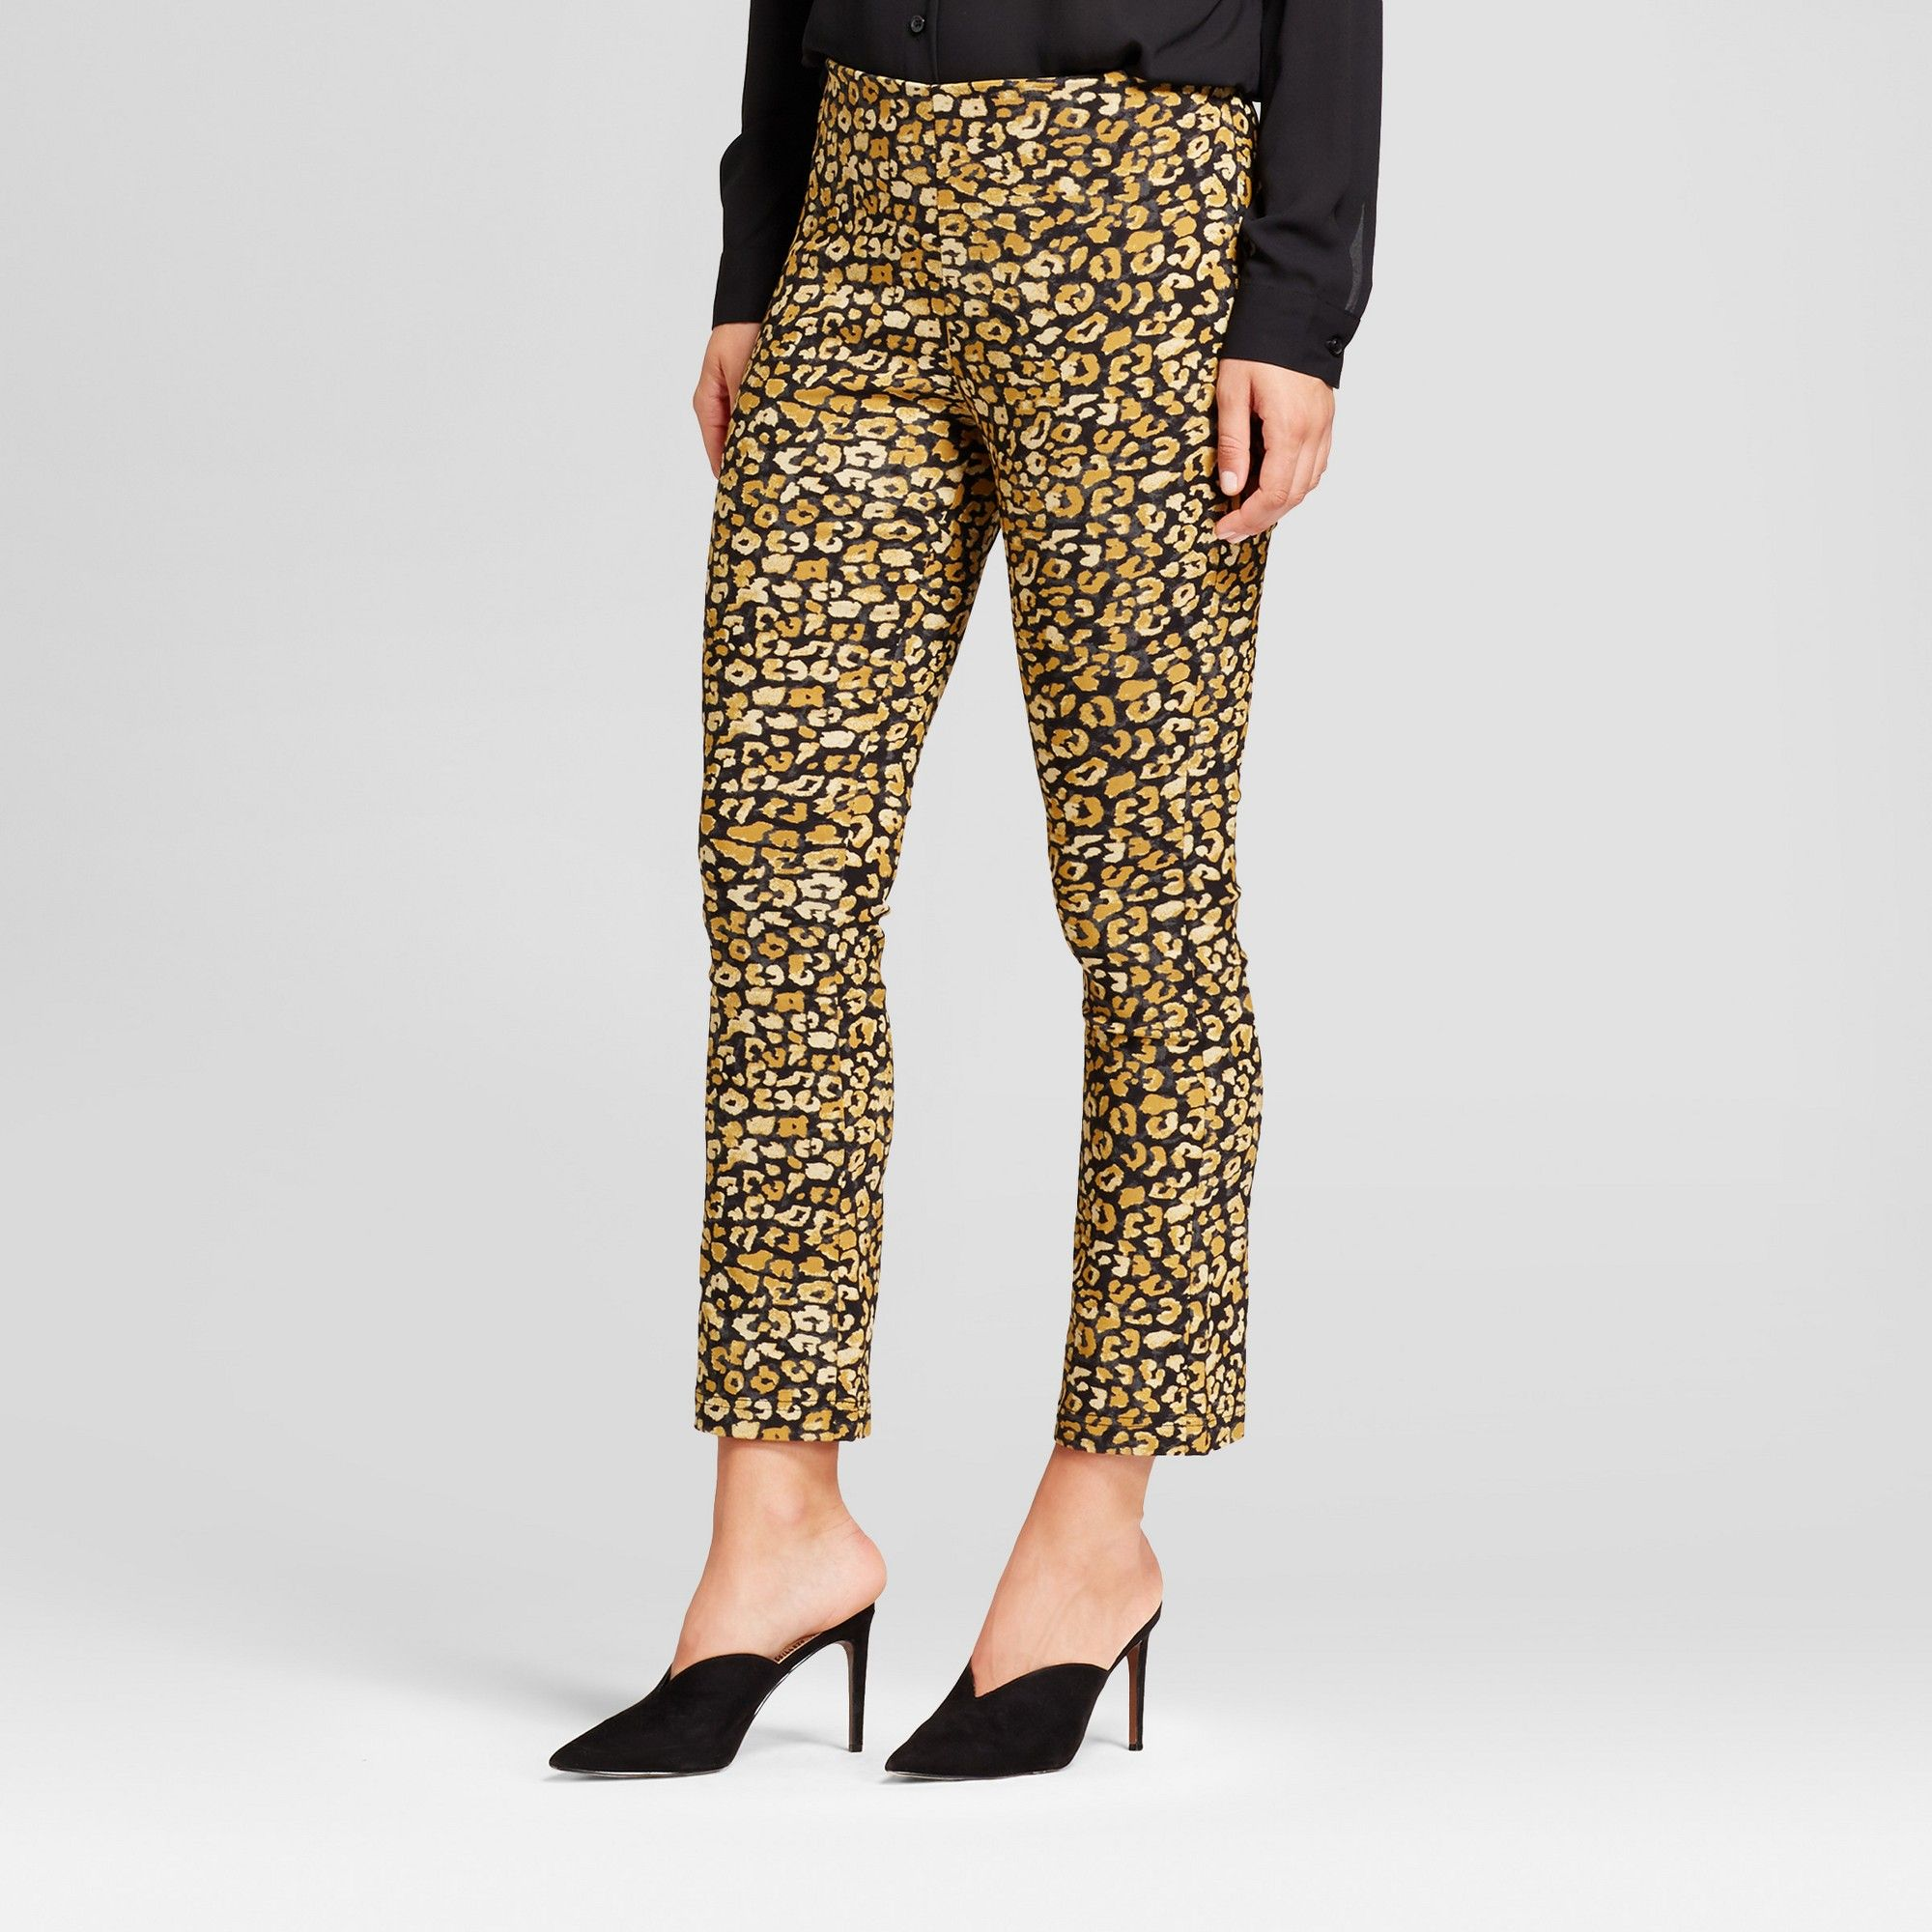 5e82f2a39afe6 Women's Crop Flare Pants - Who What Wear Yellow Cheetah 10 ...